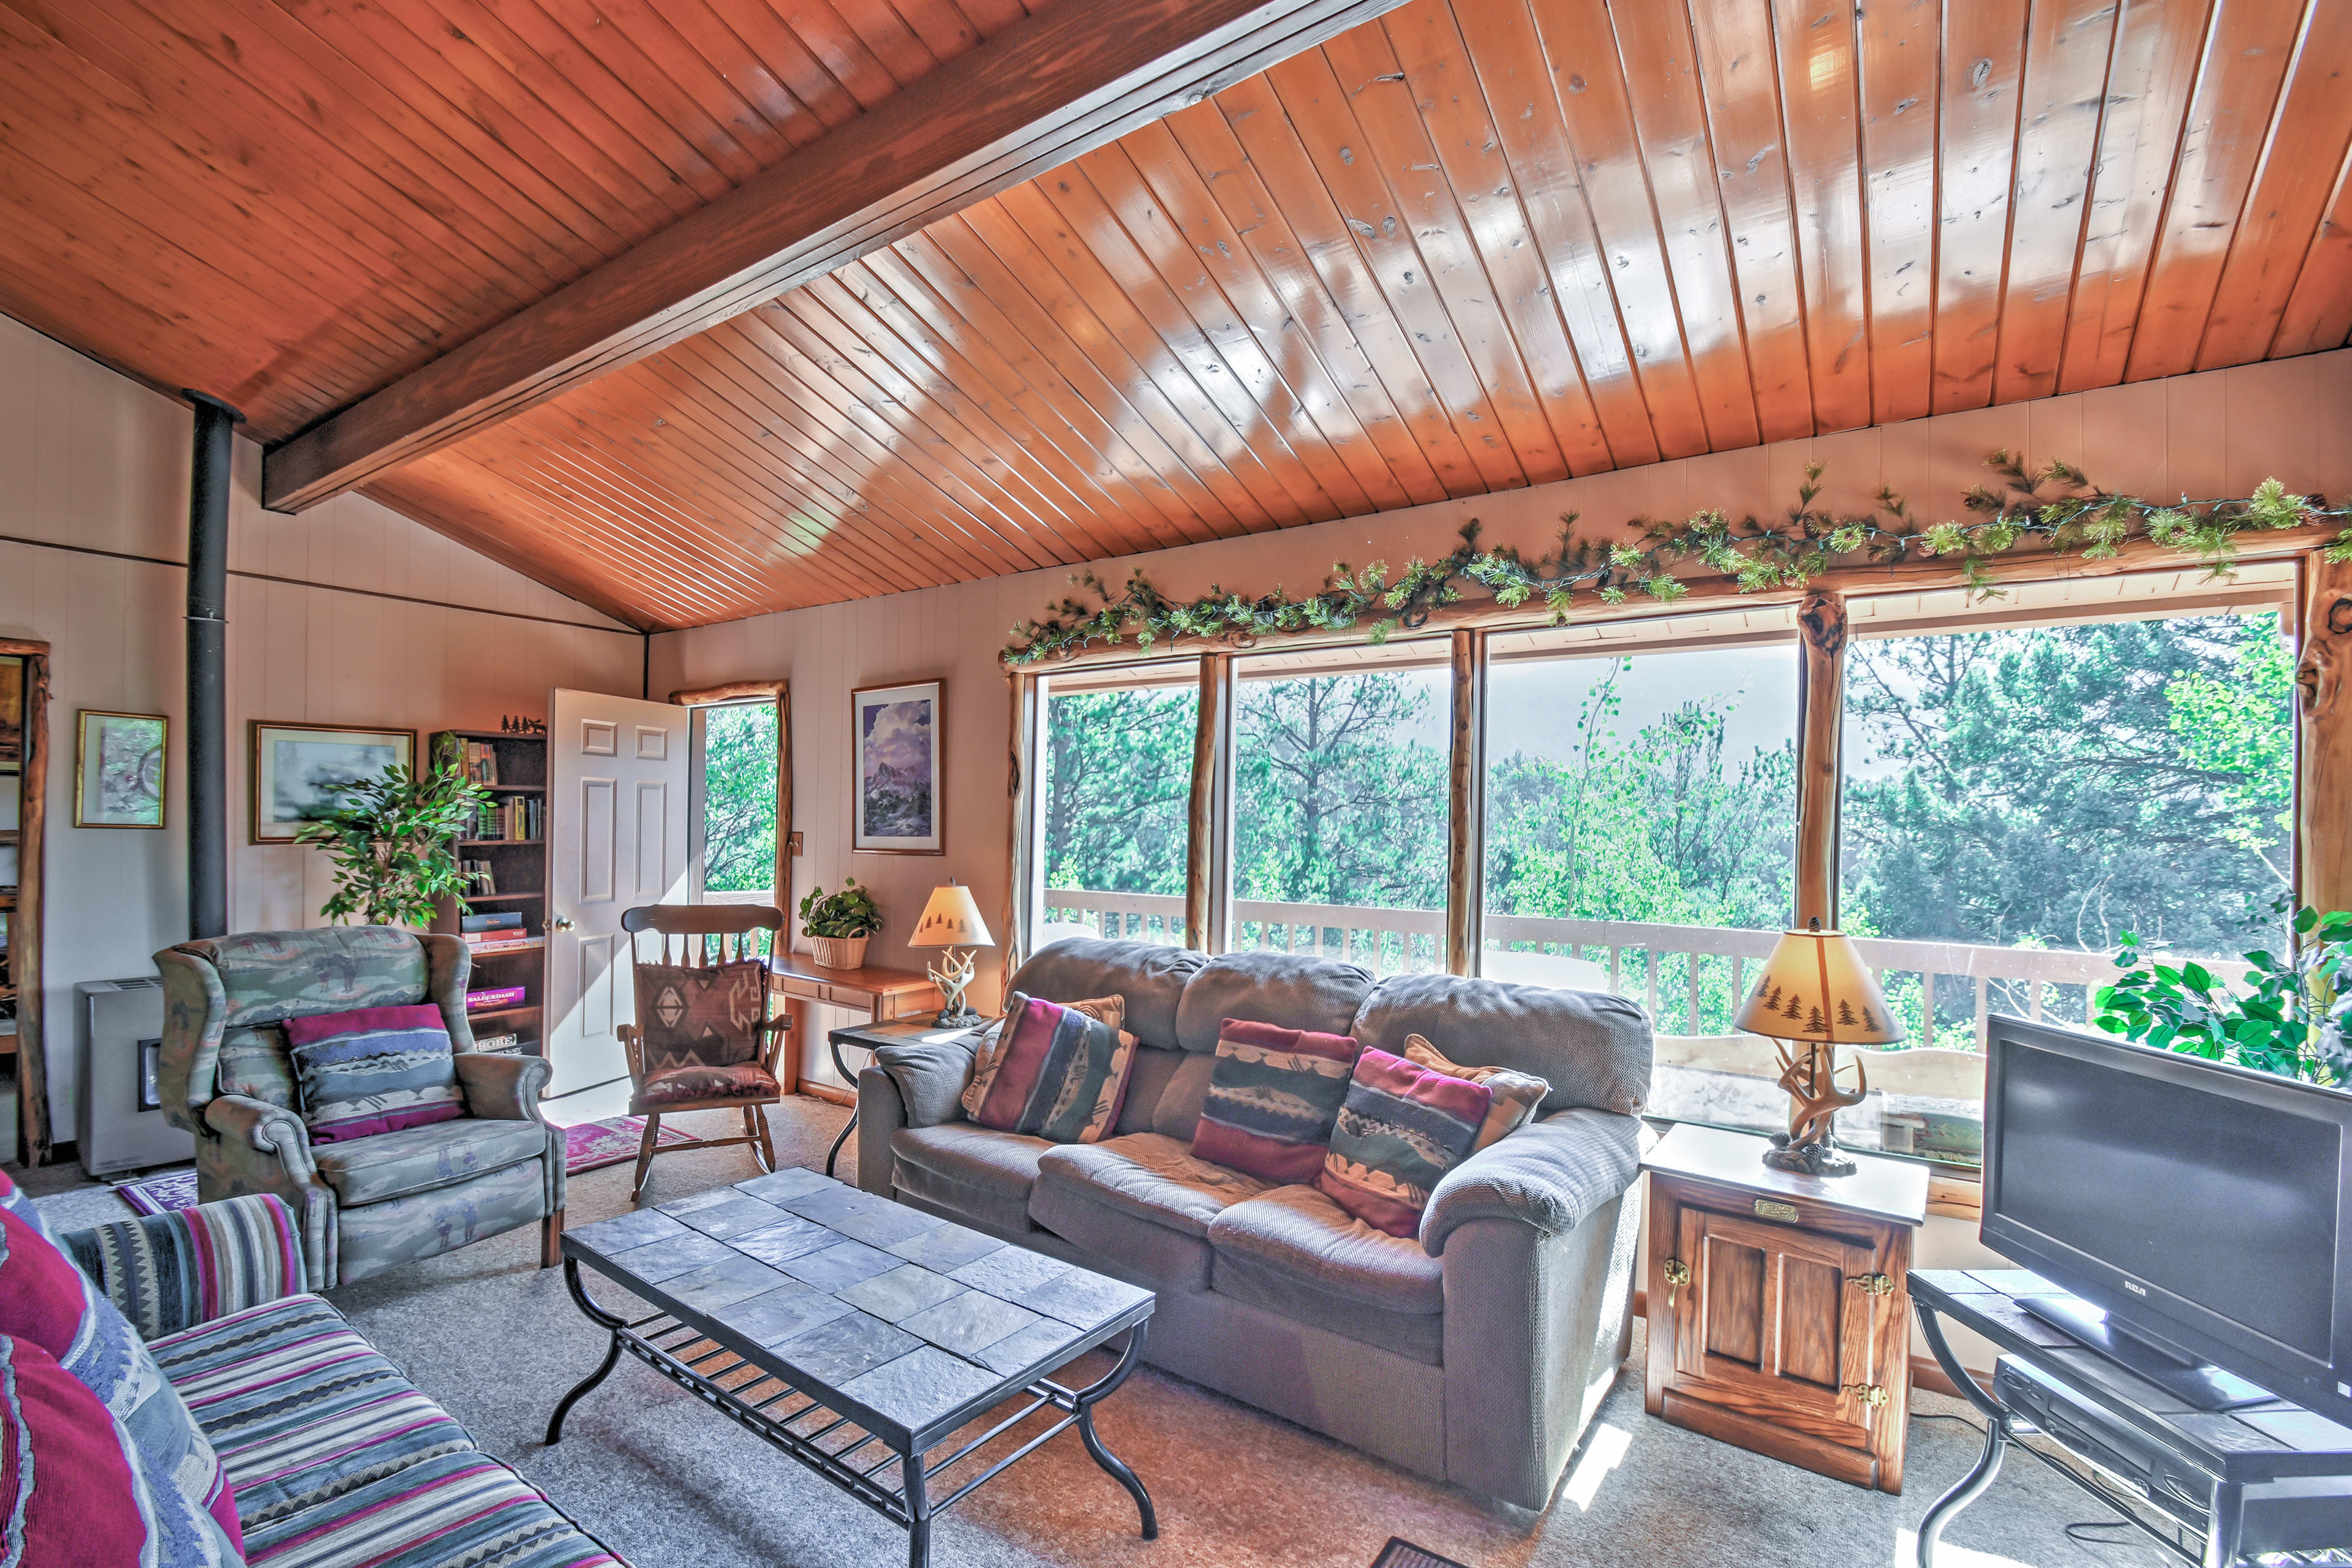 Enjoy marvelous wooded views from the expansive windows.